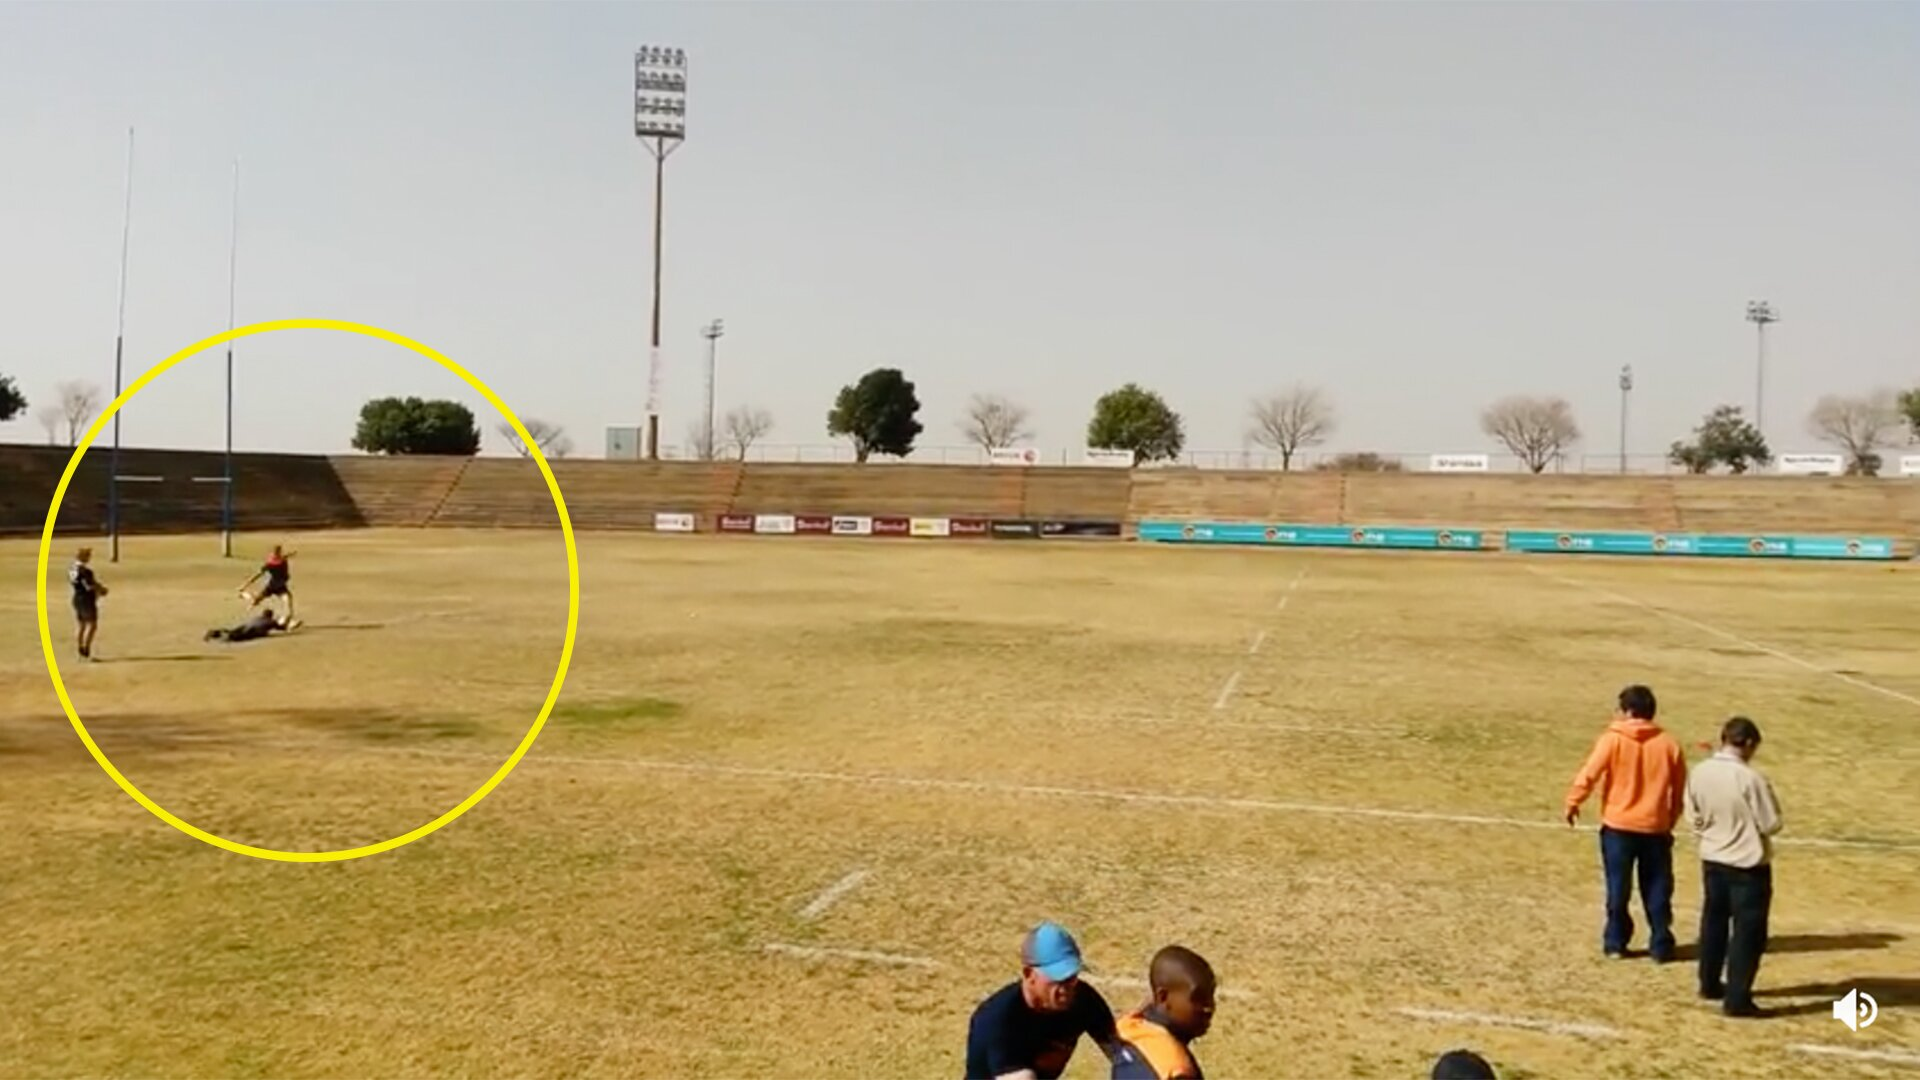 Efforts to track down teen sensation who's just nailed the longest kick of all time